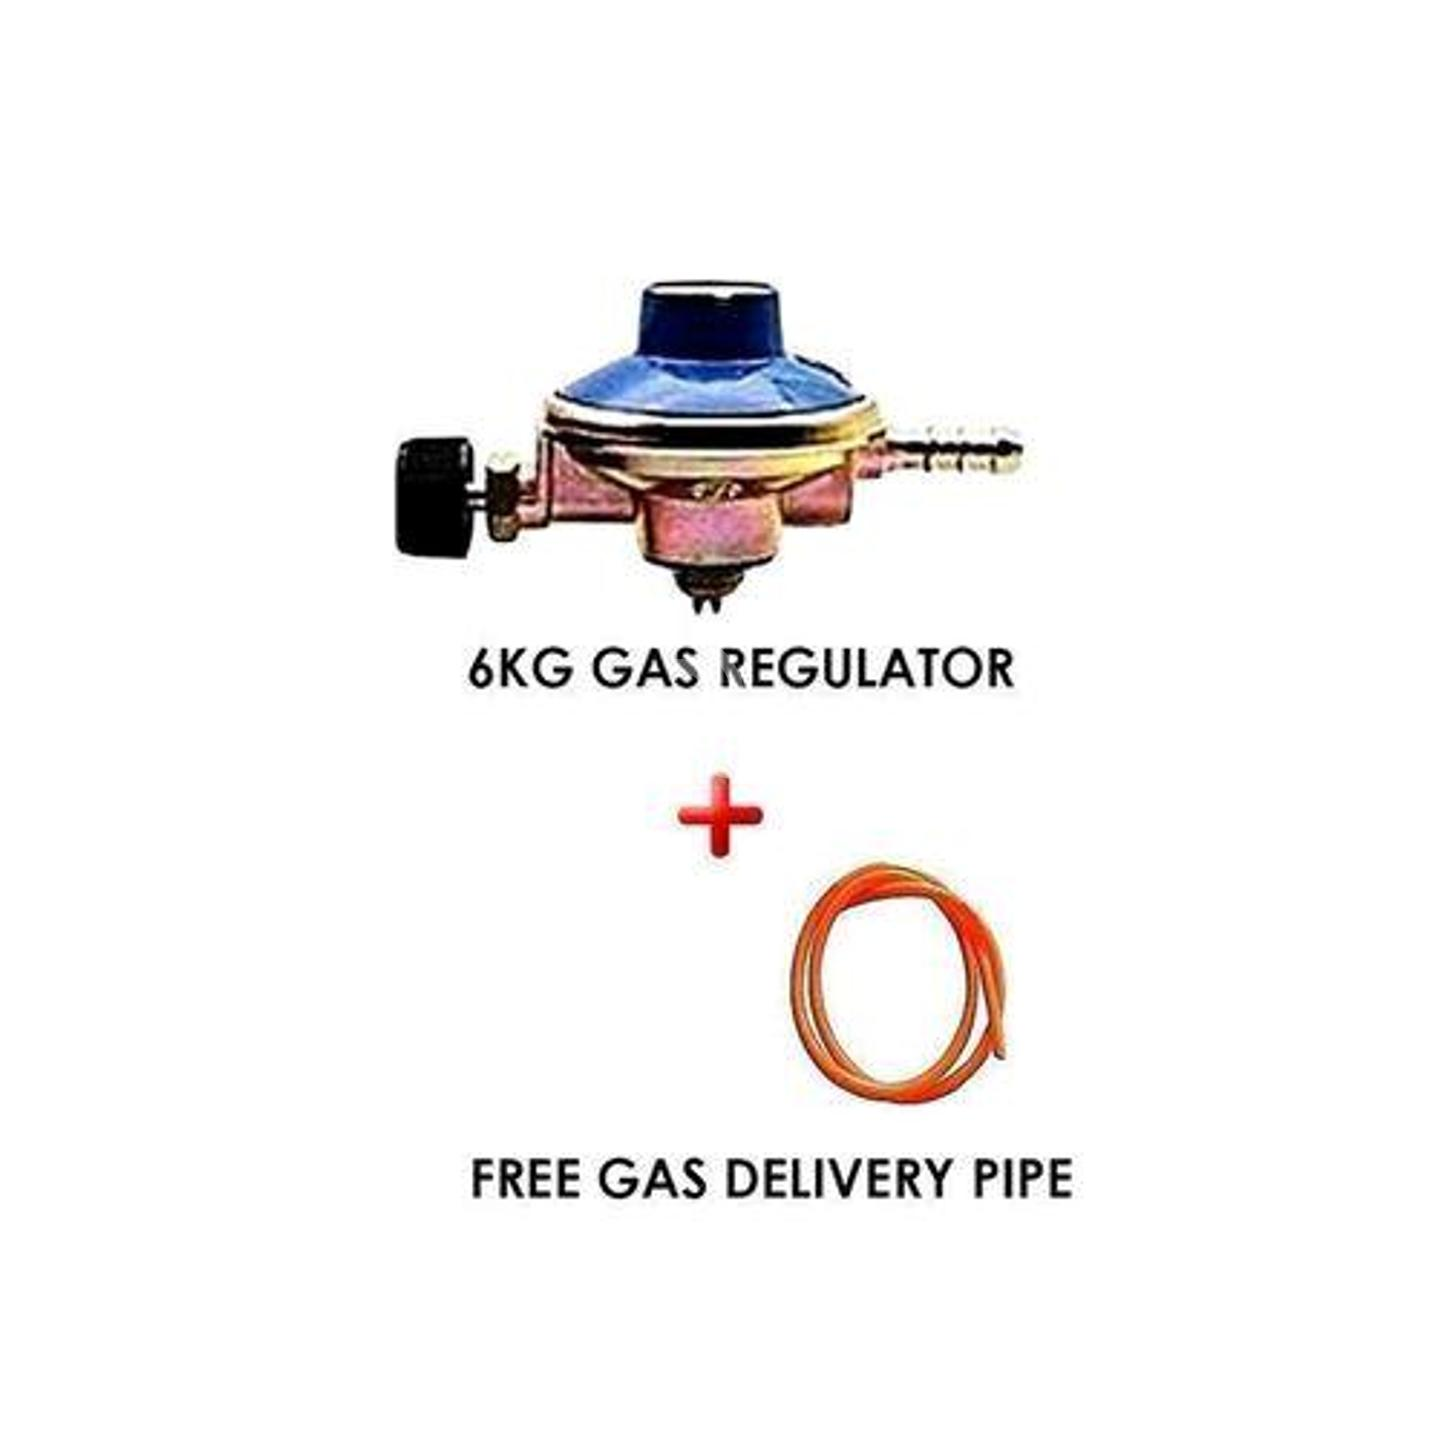 Pac 6kg Gas Regulator Plus FREE Gas Delivery Hose Pipe